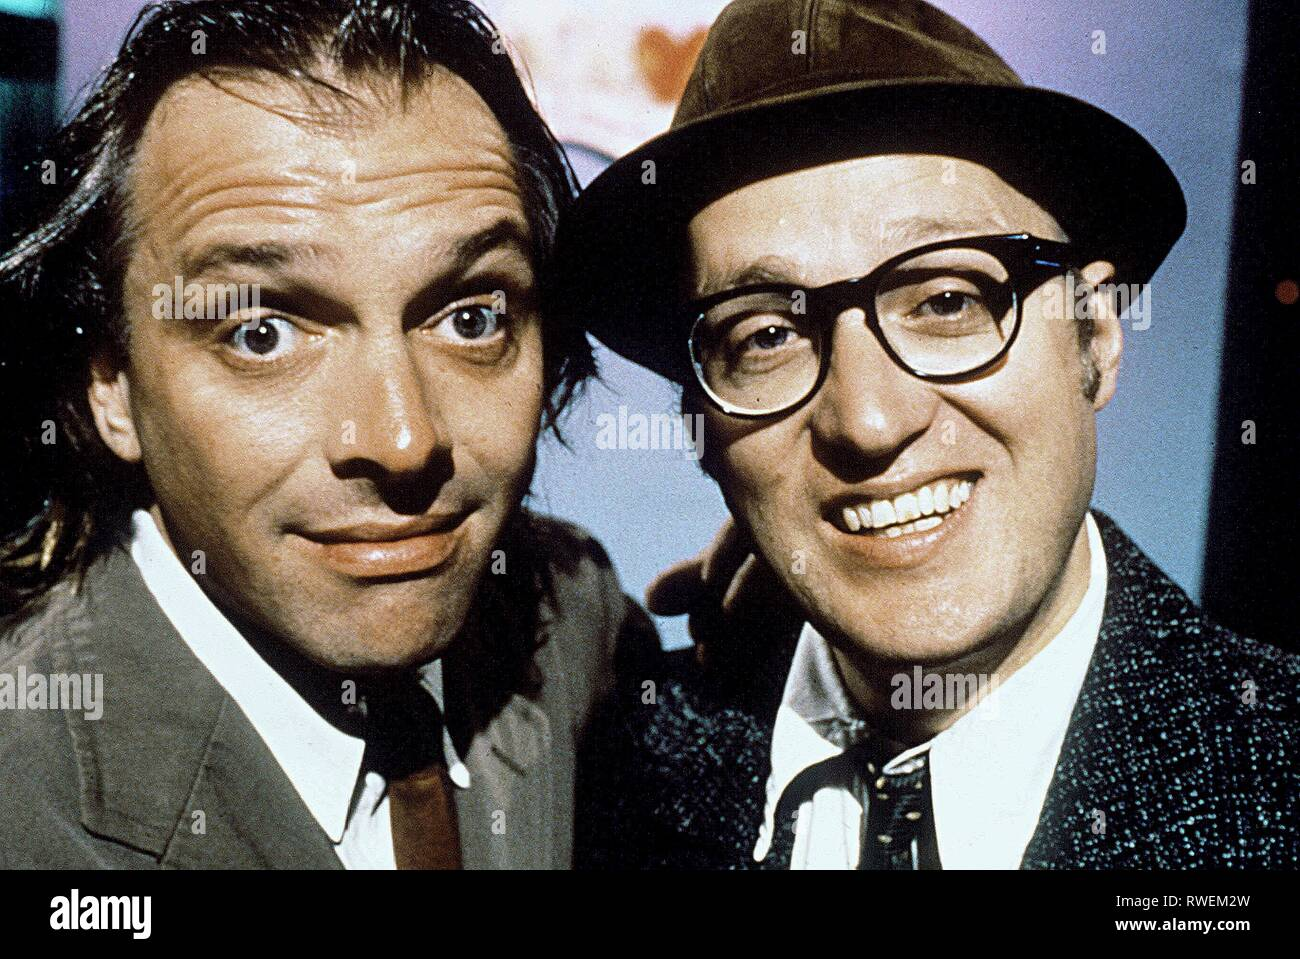 MAYALL,EDMONDSON, BOTTOM, 1991 - Stock Image